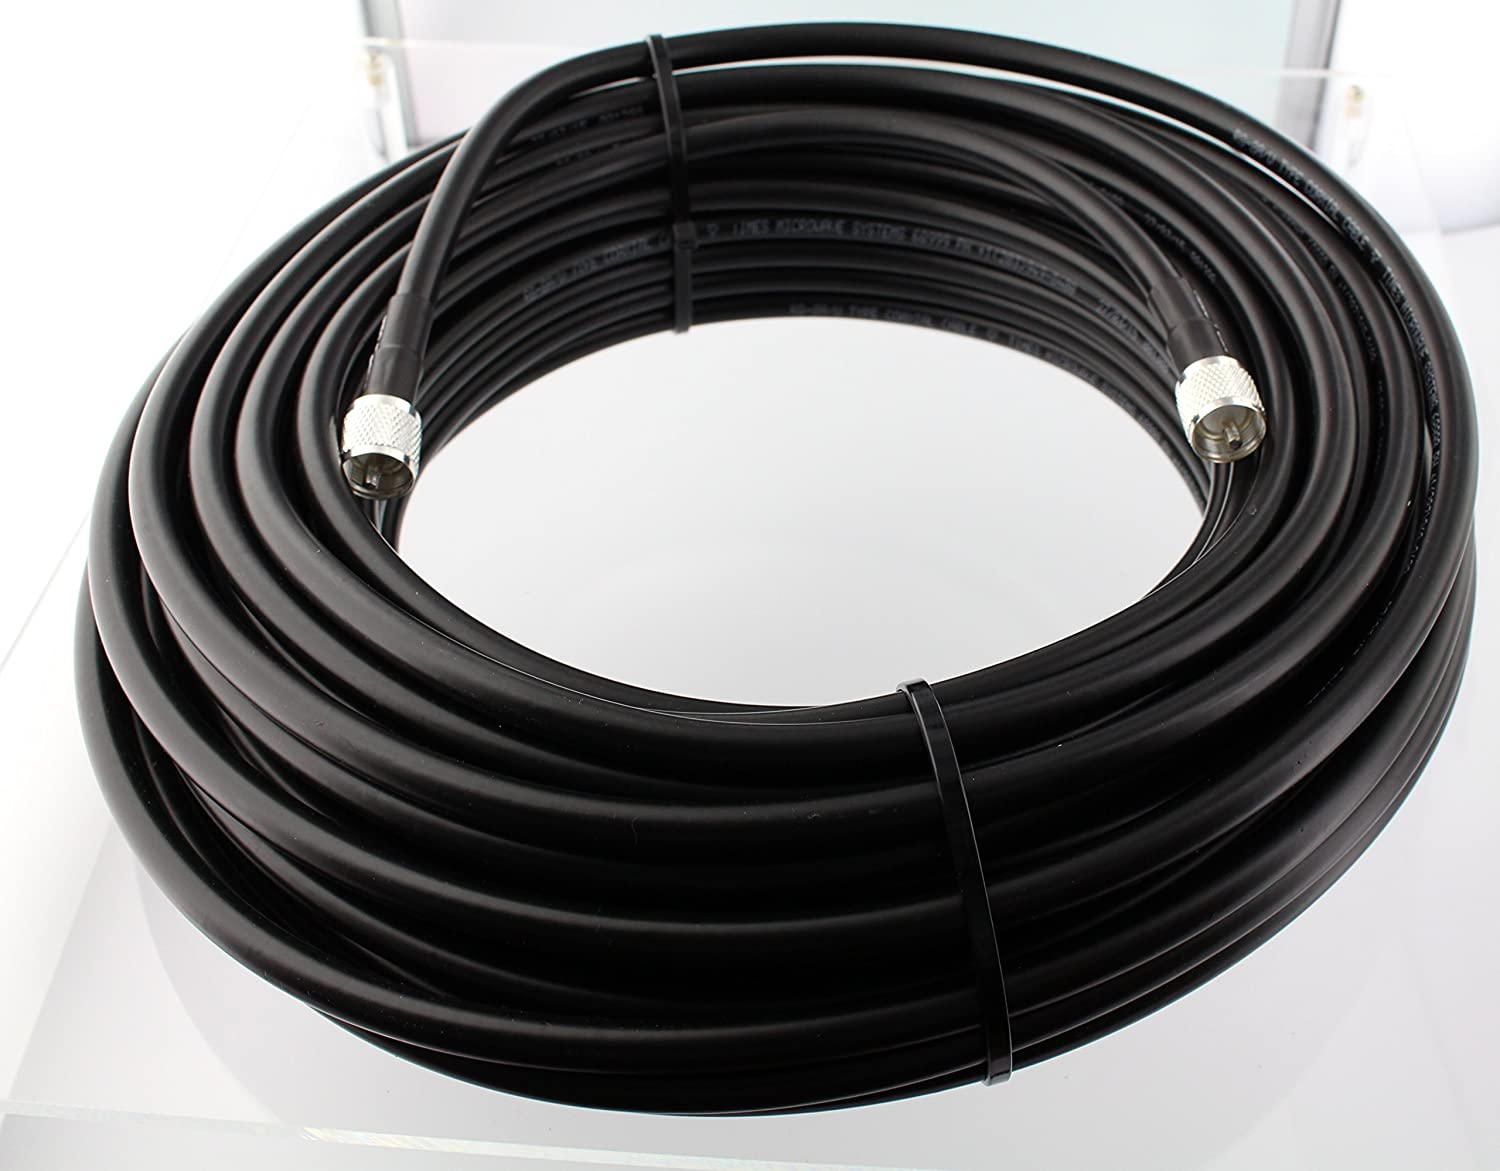 UHF VHF HF RF Antenna Cable Ham RG-213 PL-259 N Male  Ultra Low Loss Coax 75 ft